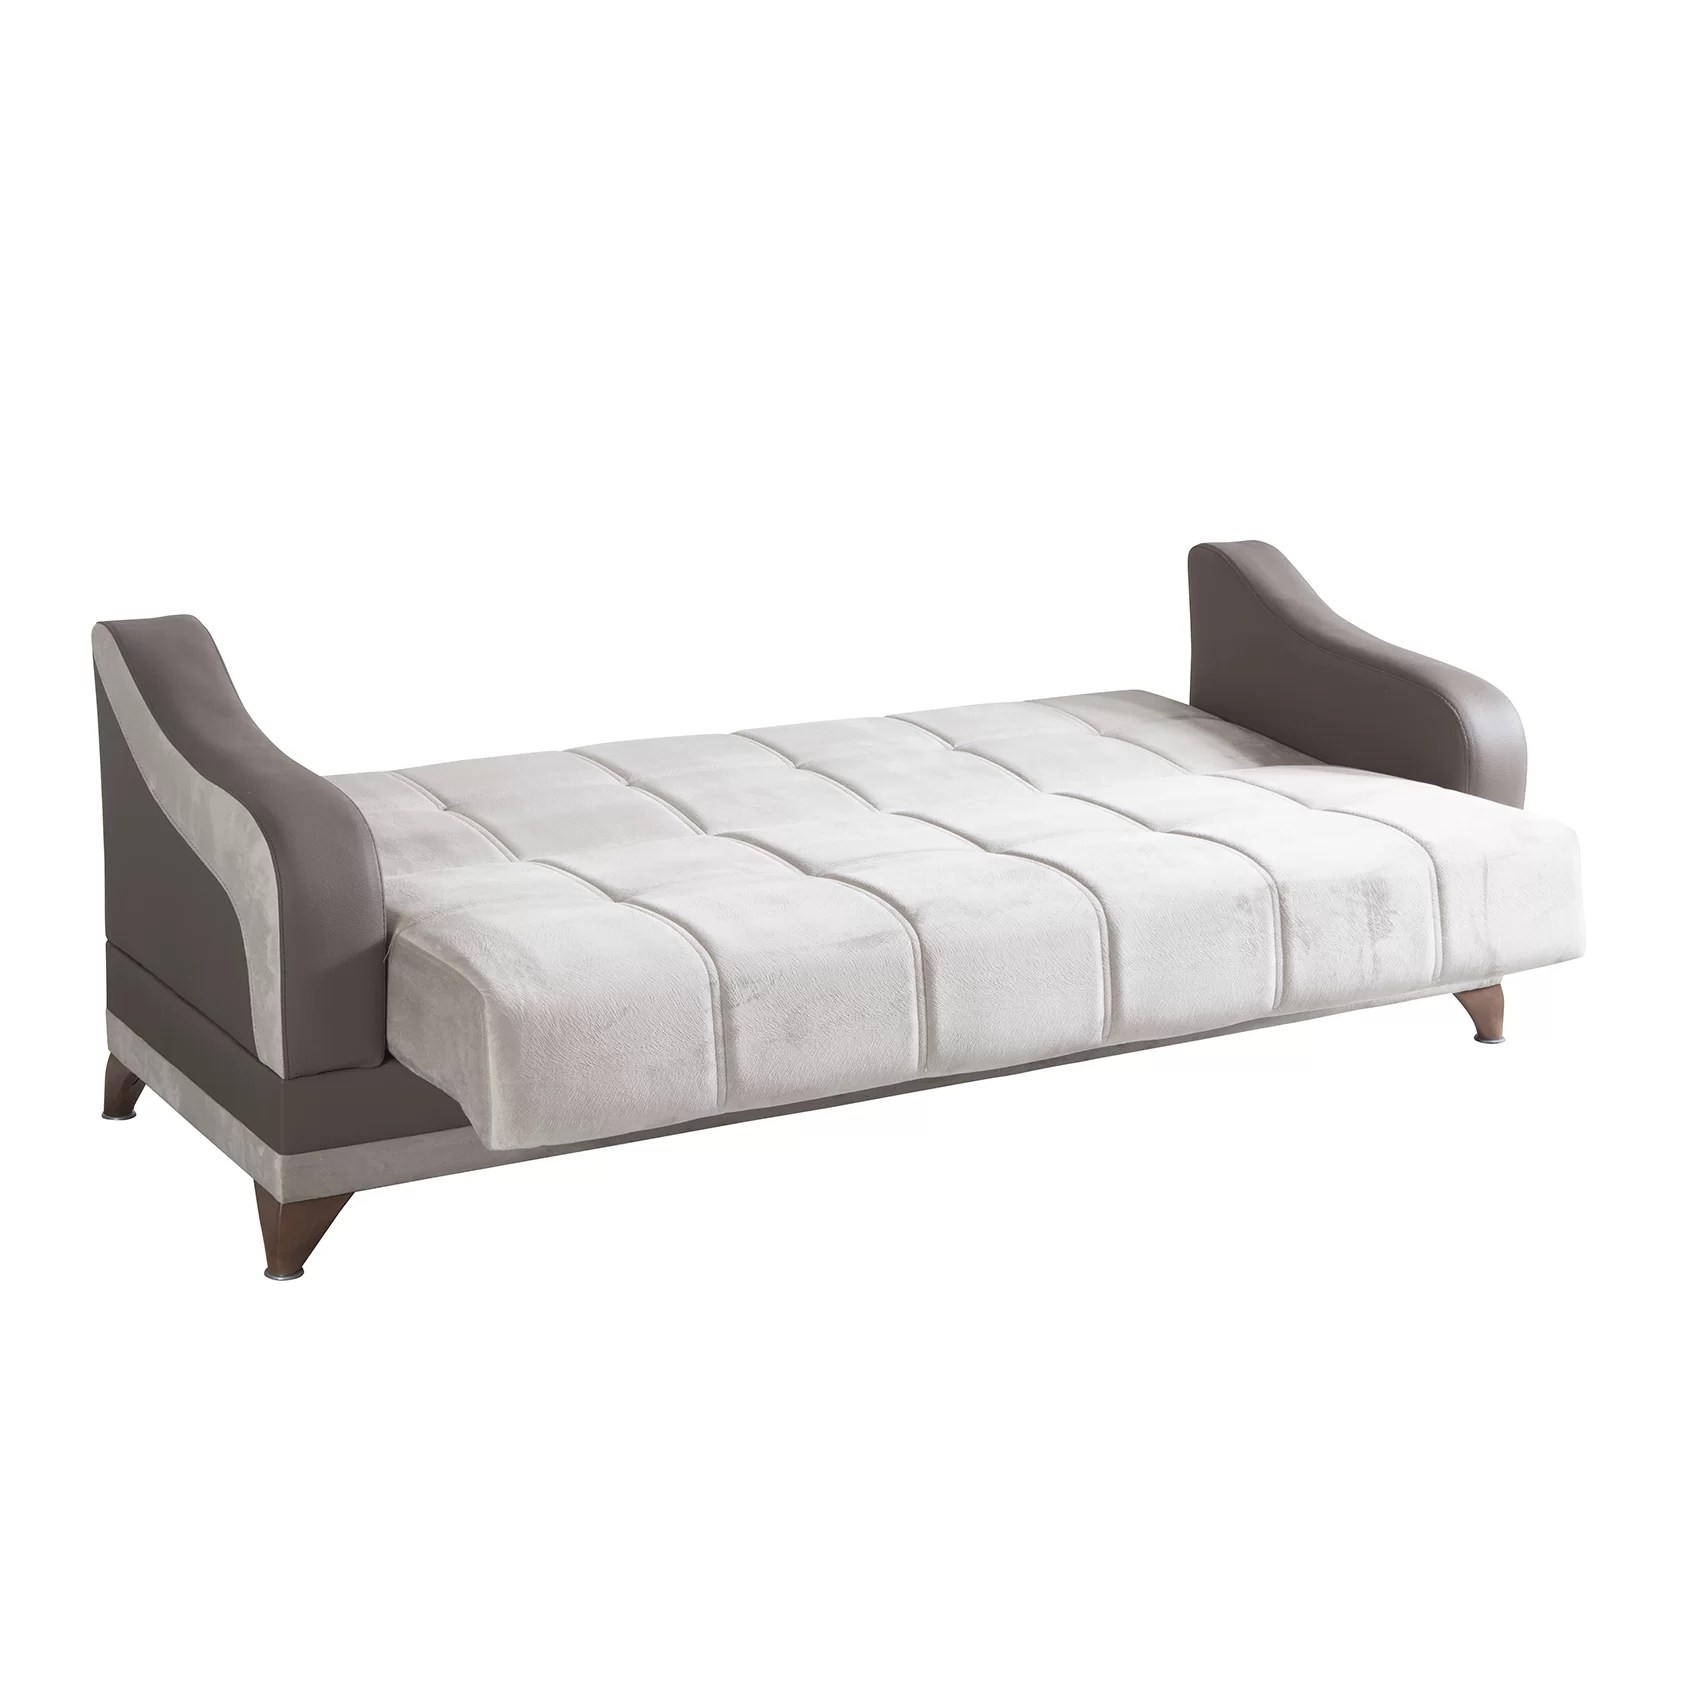 Convertible Chair Sleeper Synchomedesign Elif 3 Seater Convertible Sleeper Sofa